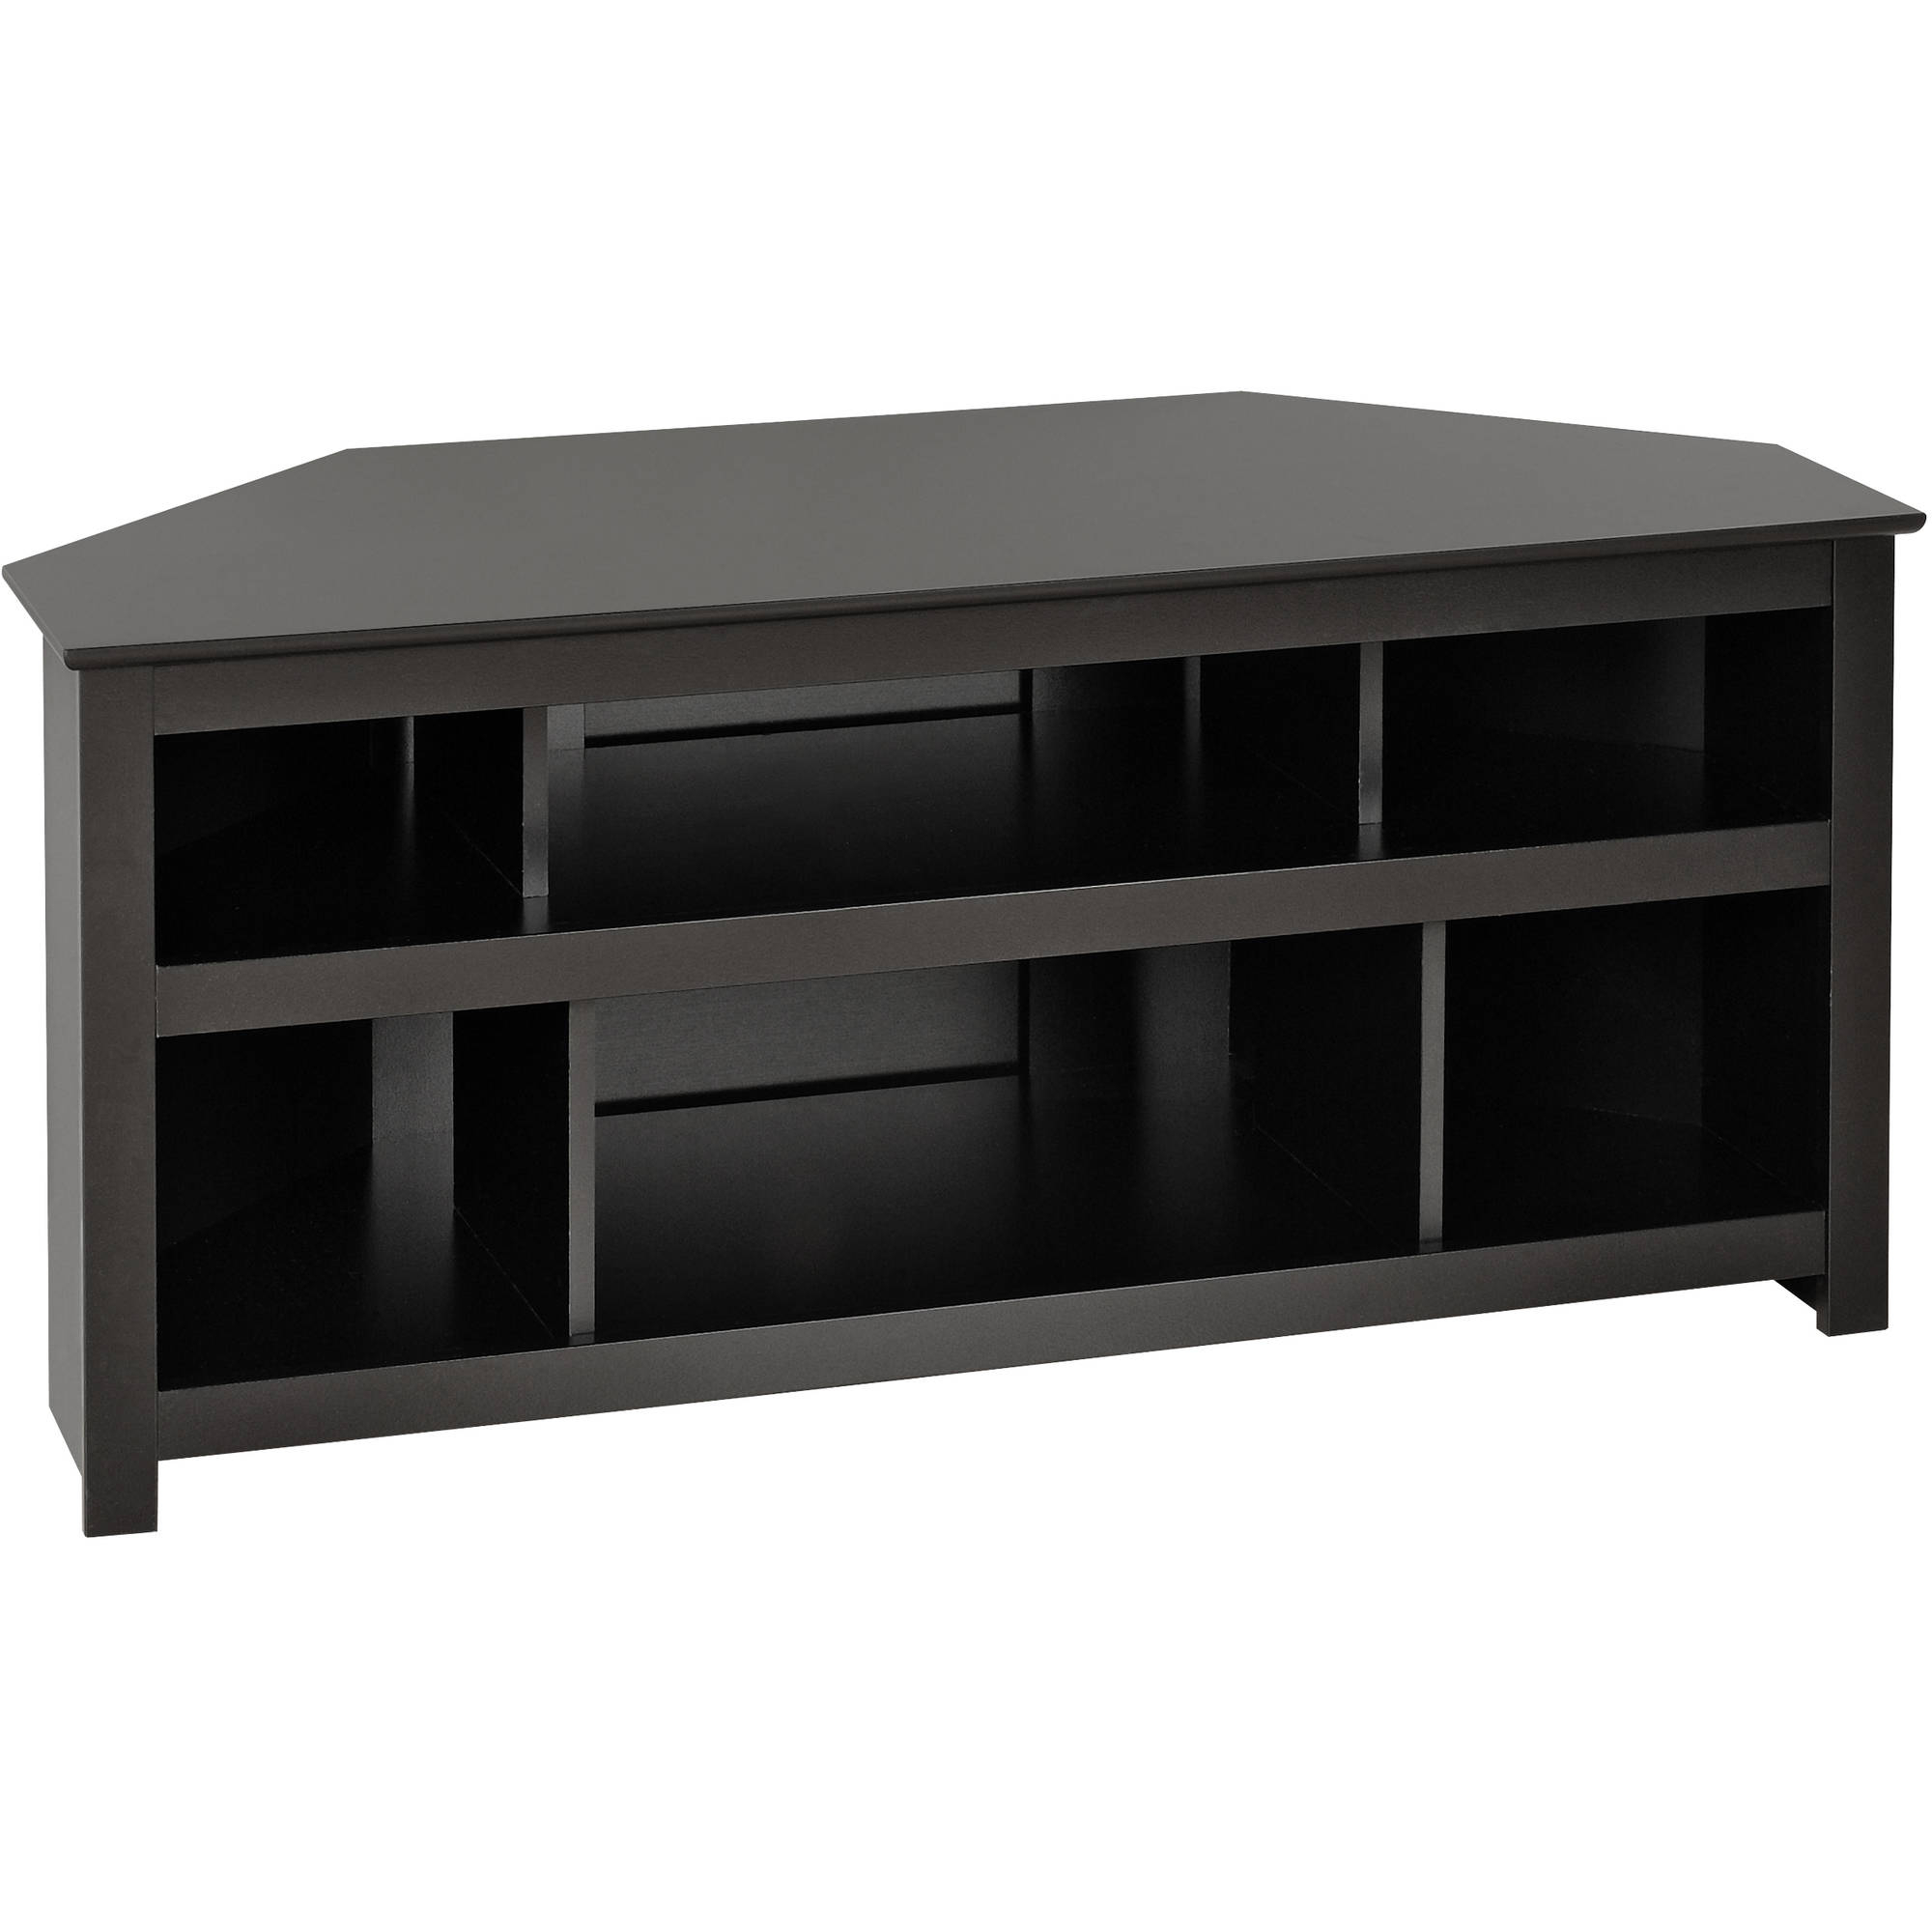 Most Popular Black Corner Tv Cabinets Throughout Tv Stand With Mount Corner Stands Wood Armoire Flat Panel Fireplace (View 13 of 20)